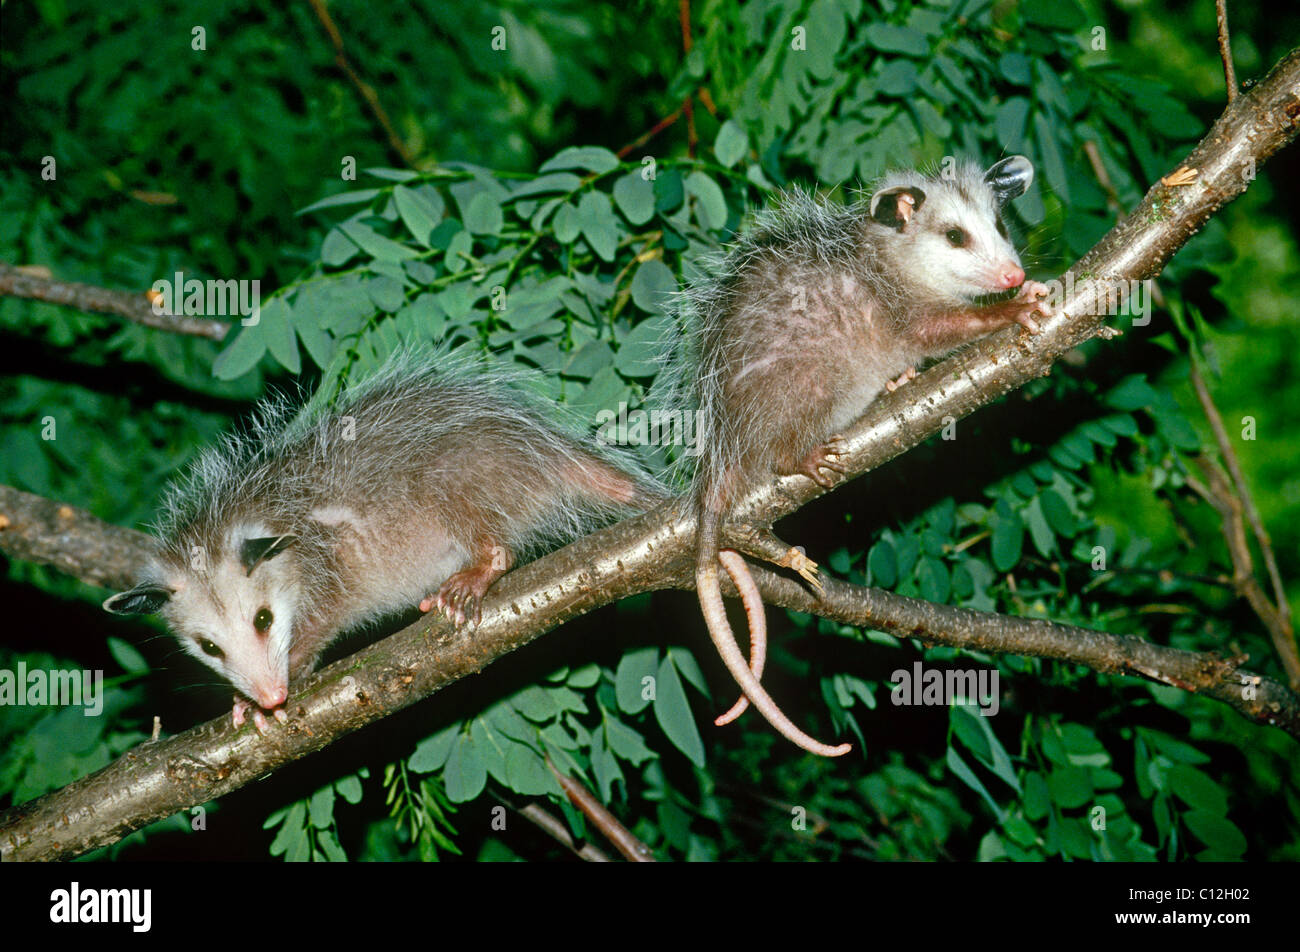 Two baby opossums (Didelphis marsupialis) from the same litter on a tree branch with tails linked in June, USA - Stock Image